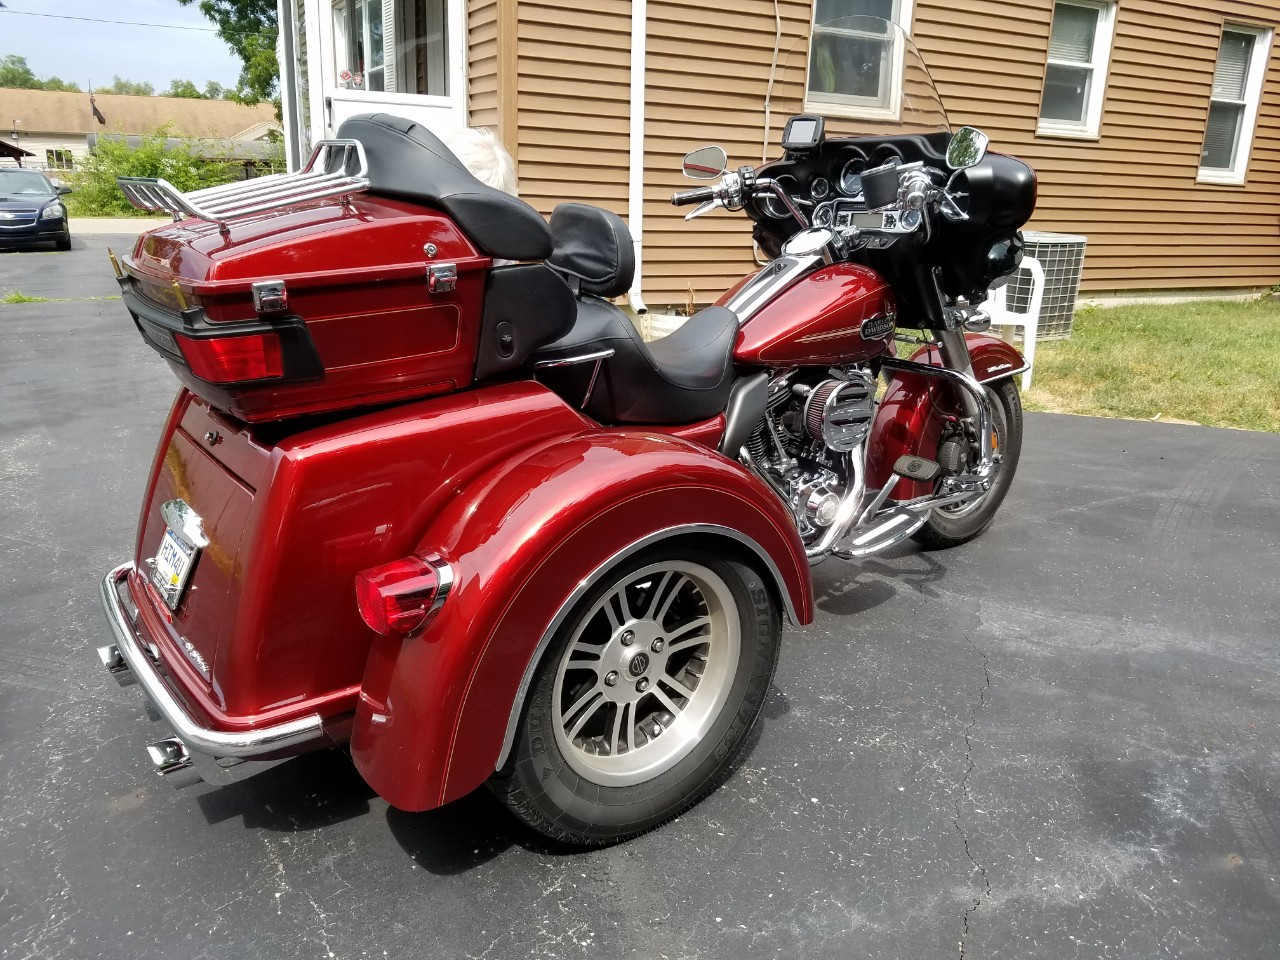 Michigan 258 Trike Motorcycles Near Me For Sale Cycle Trader